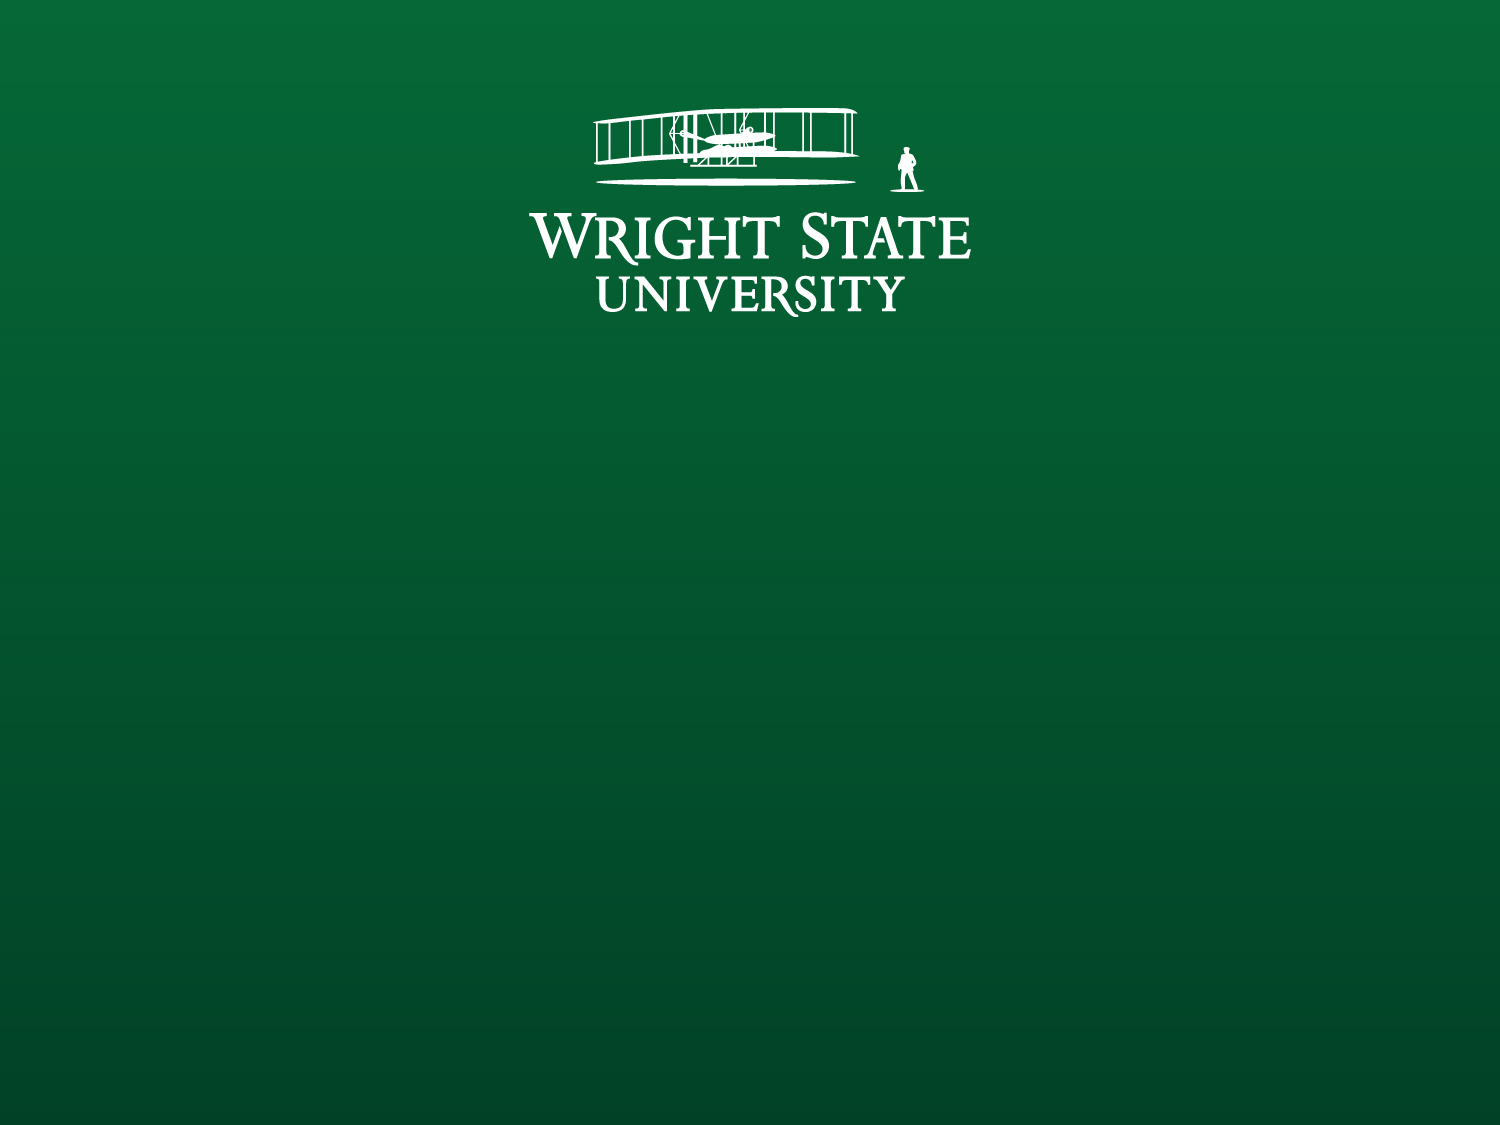 Powerpoint templates office of marketing wright state university university template powerpoint 01g powerpoint 03g toneelgroepblik Image collections